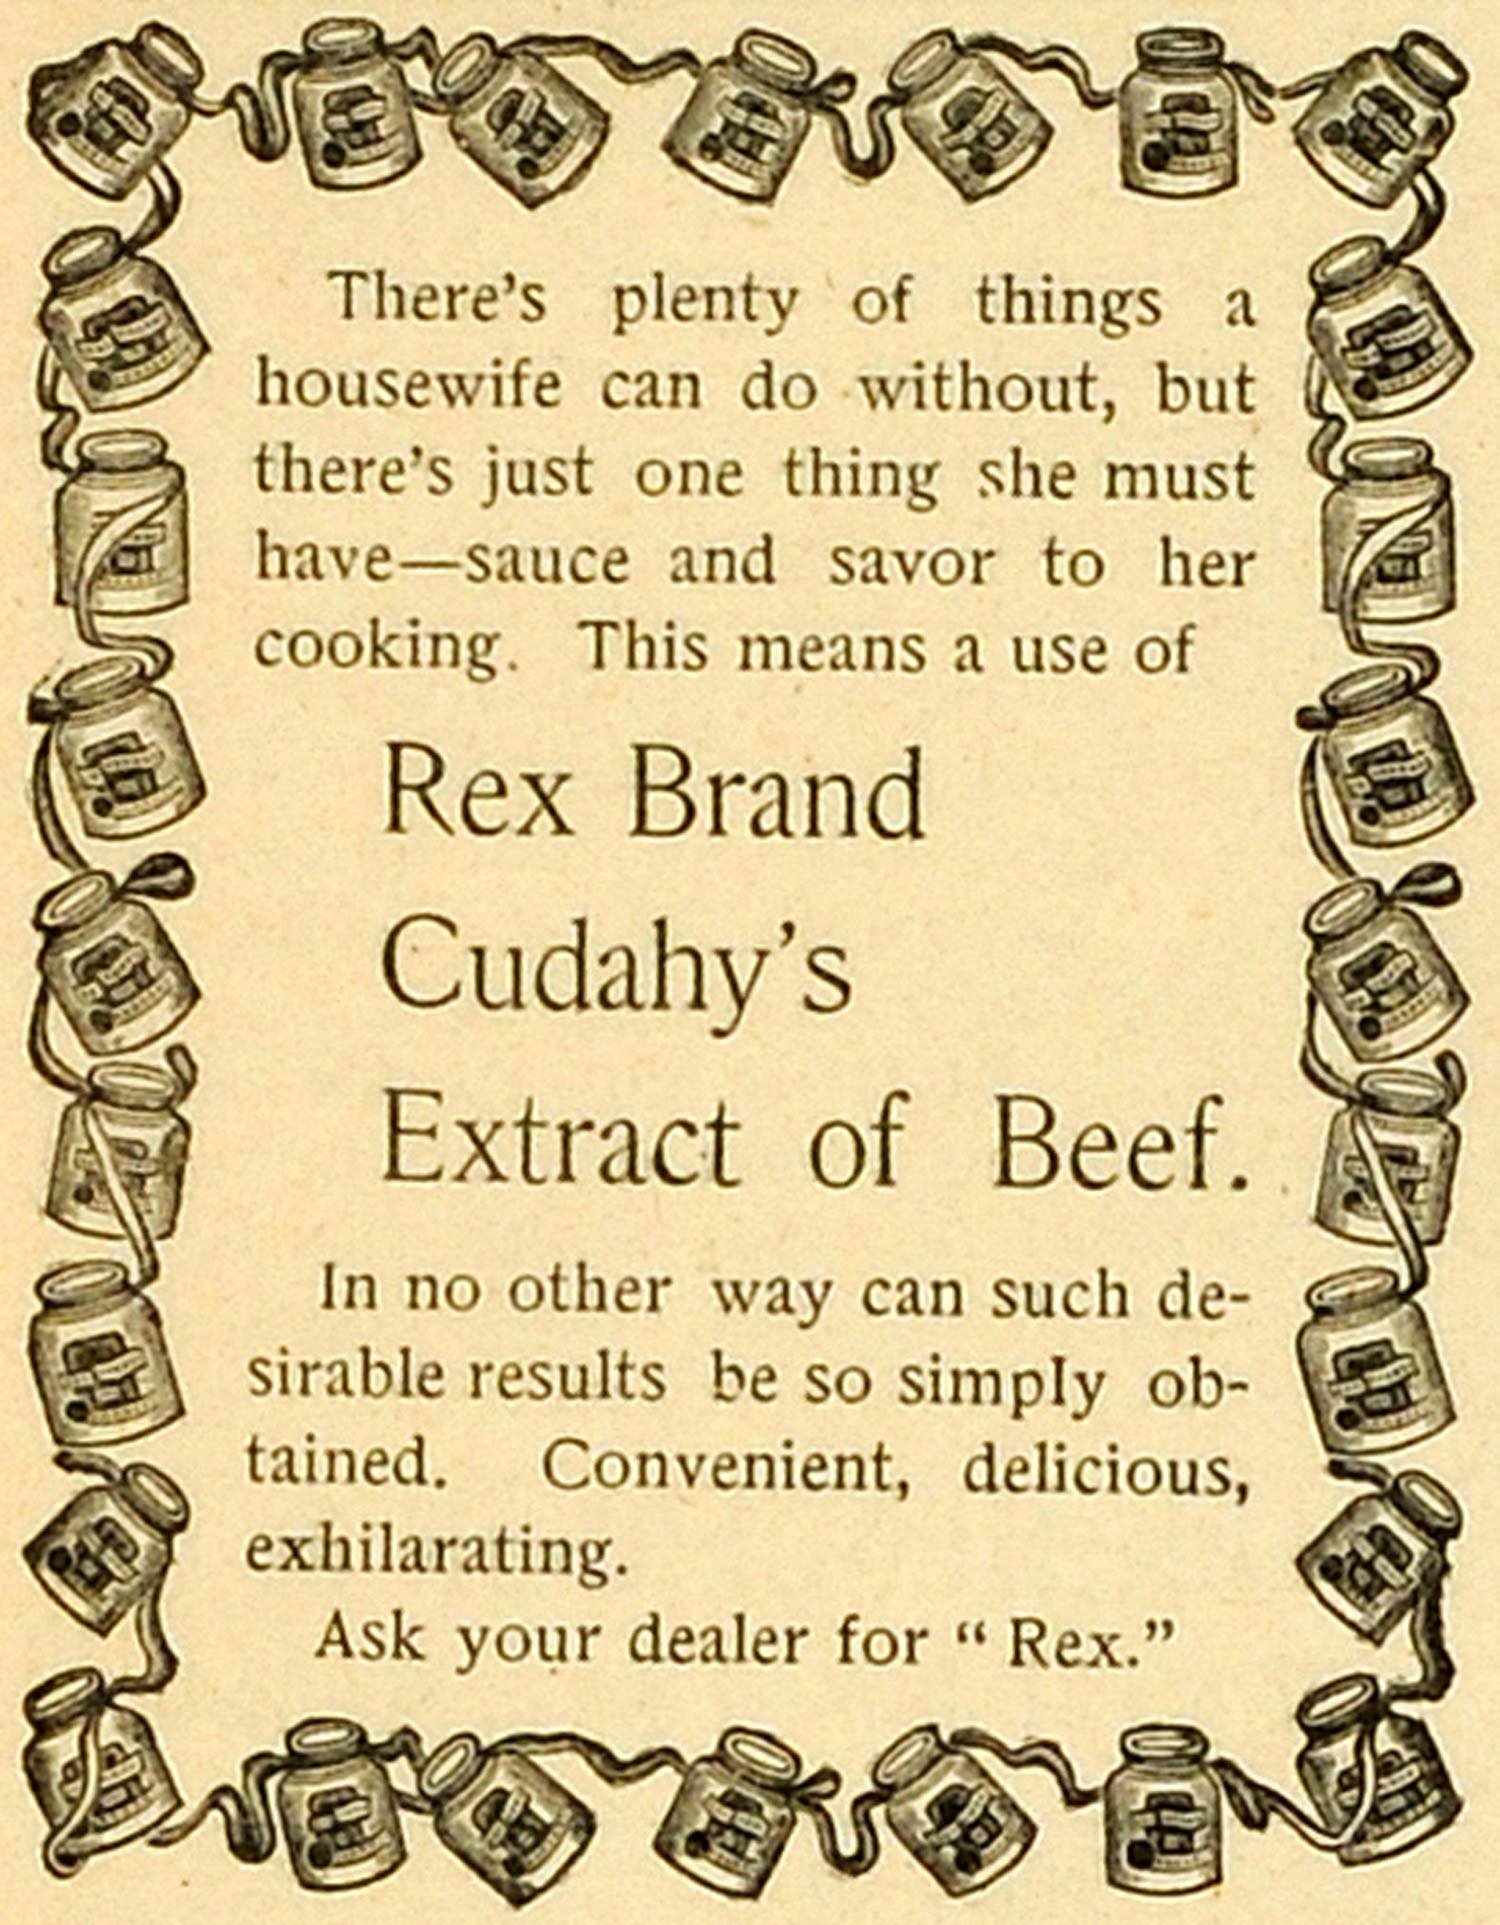 1893 Ad Rex Brand Cudahy's Extract Beef Soup Stock Cube Consomme Food MX7